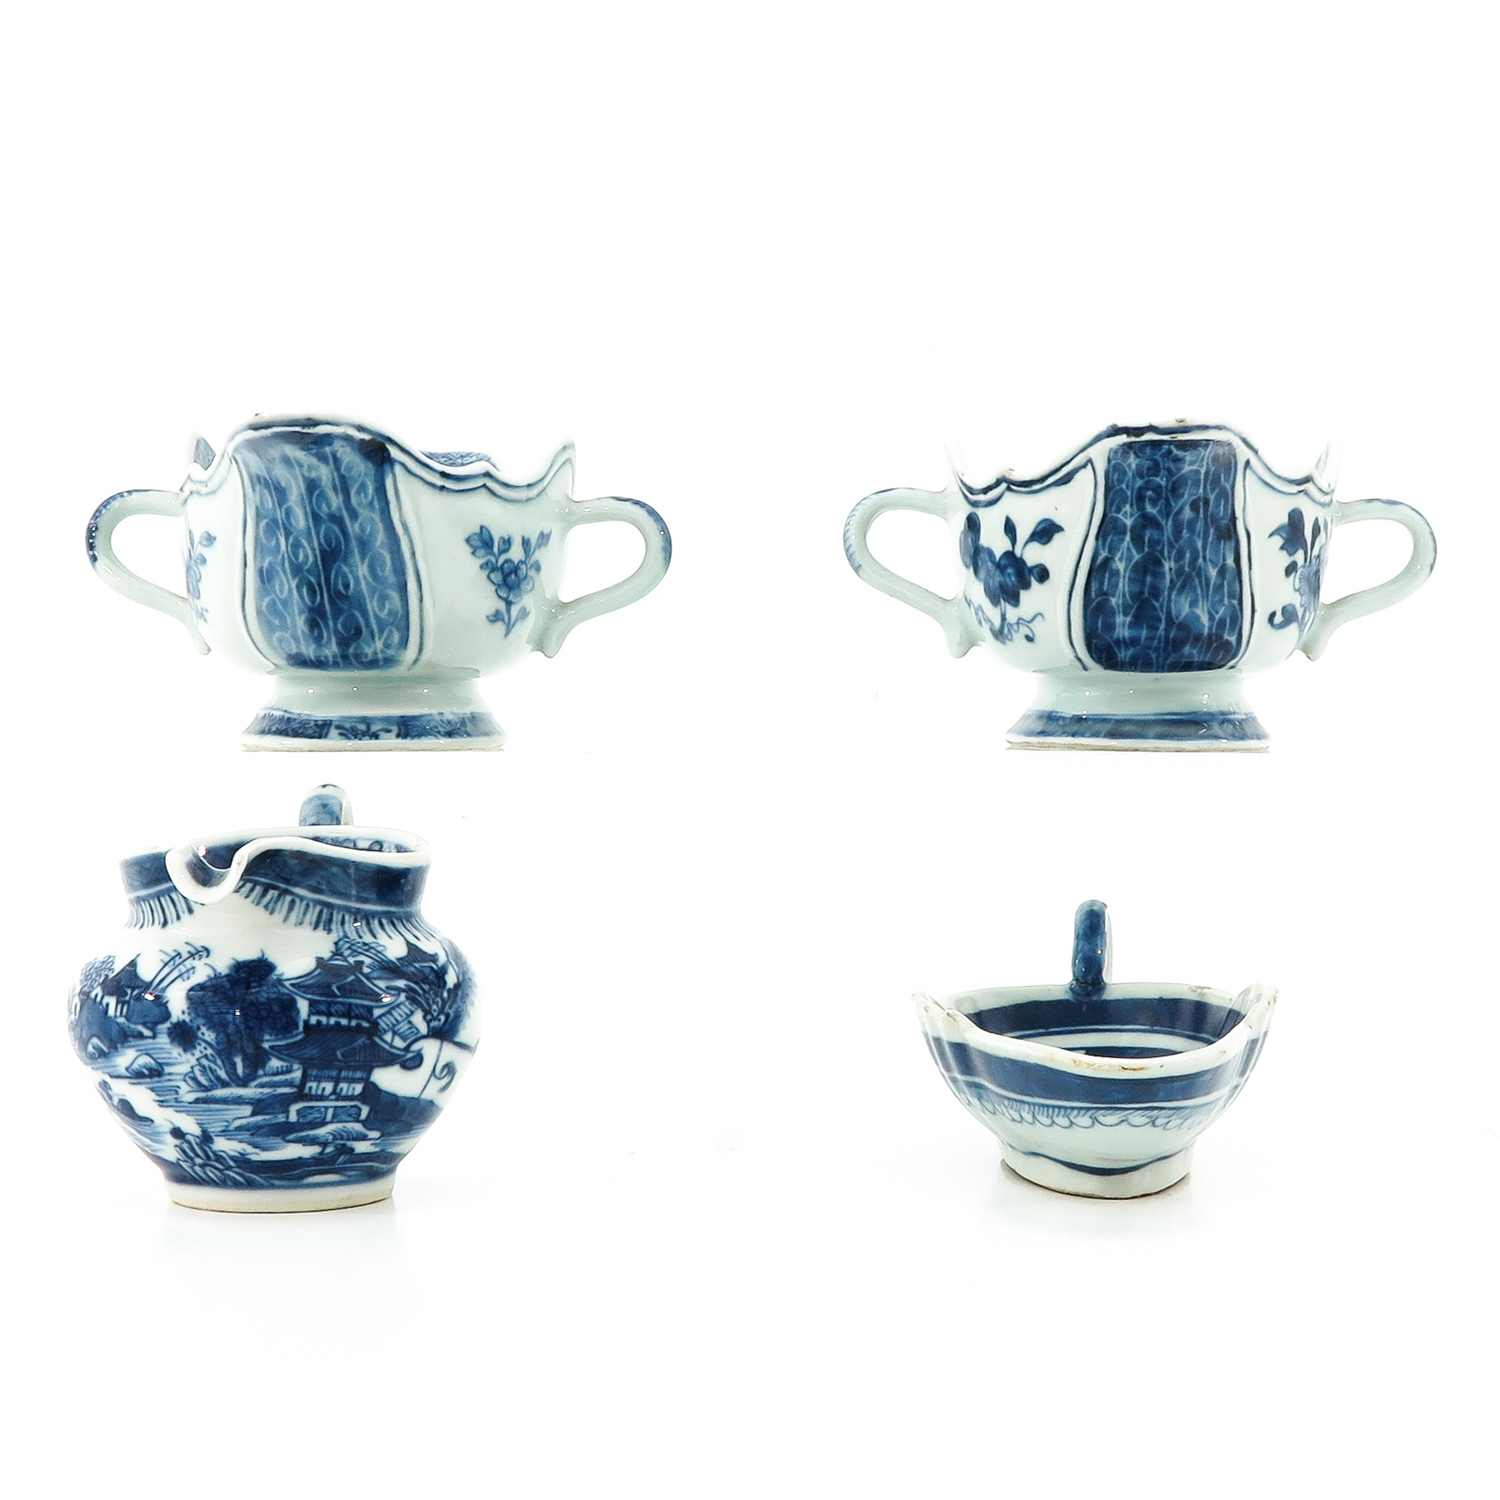 A Collection of Porcelain - Image 4 of 10